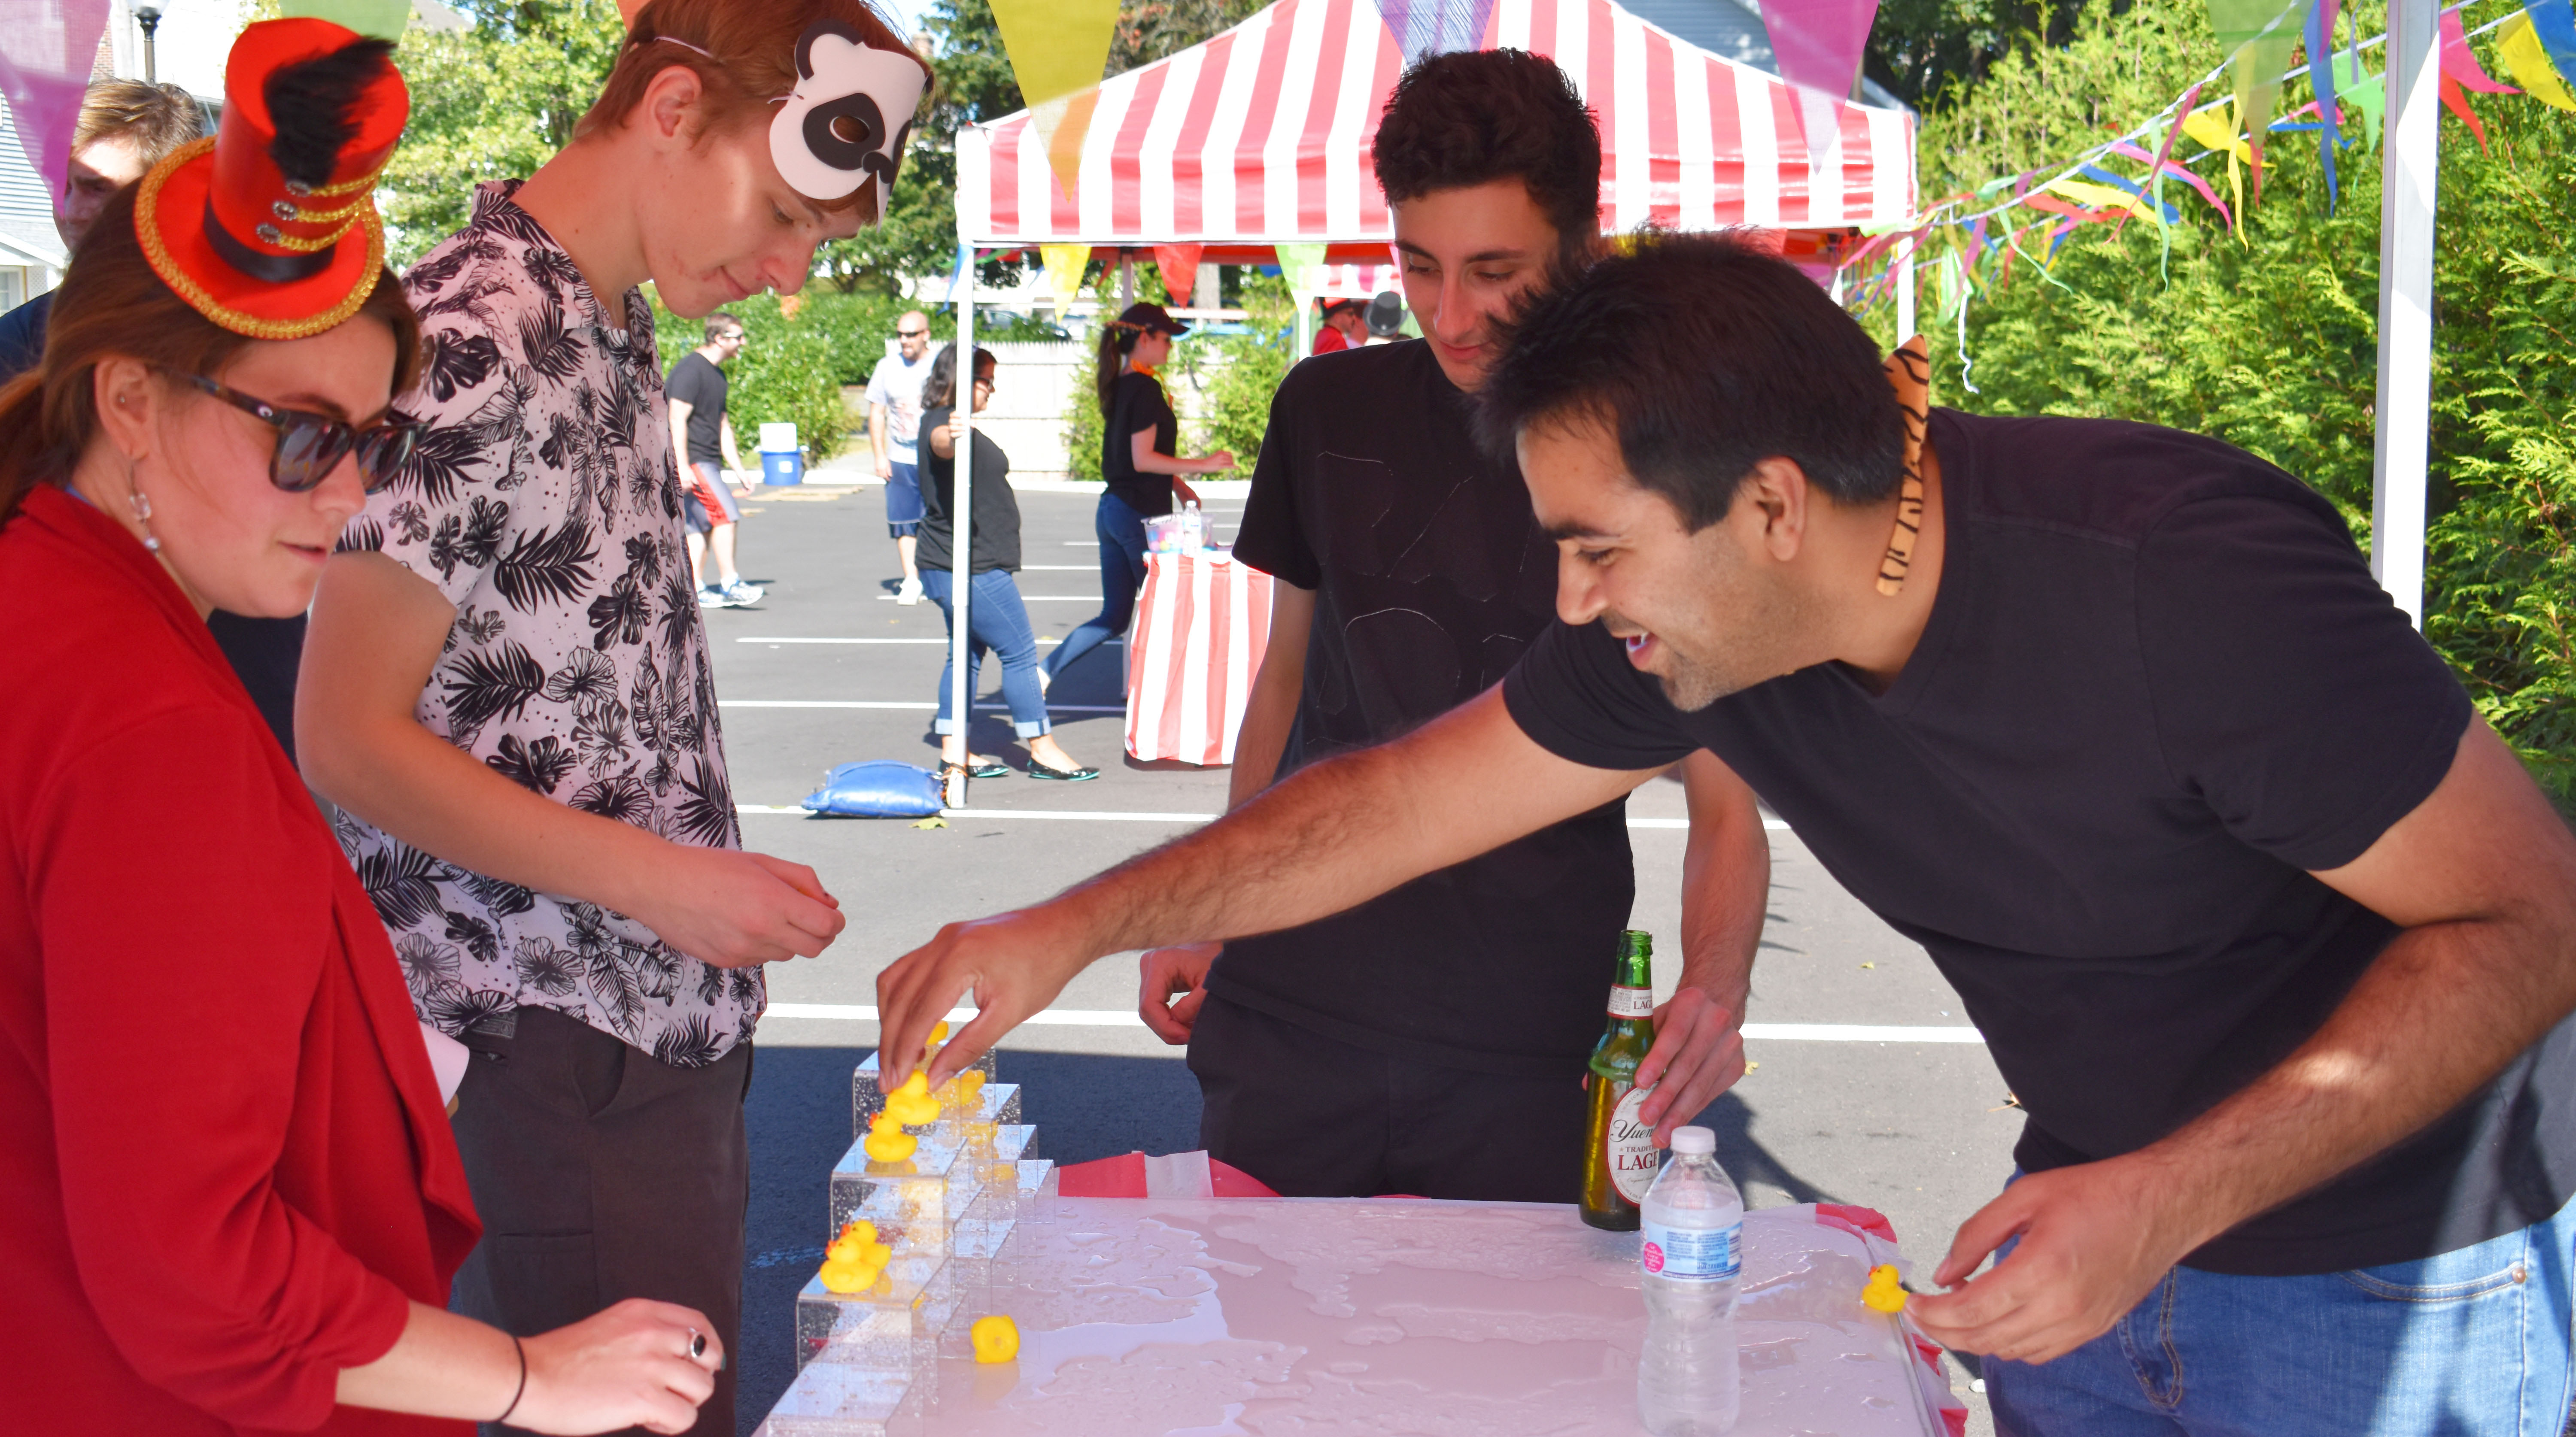 Team Setting up a Rubber Duck Game